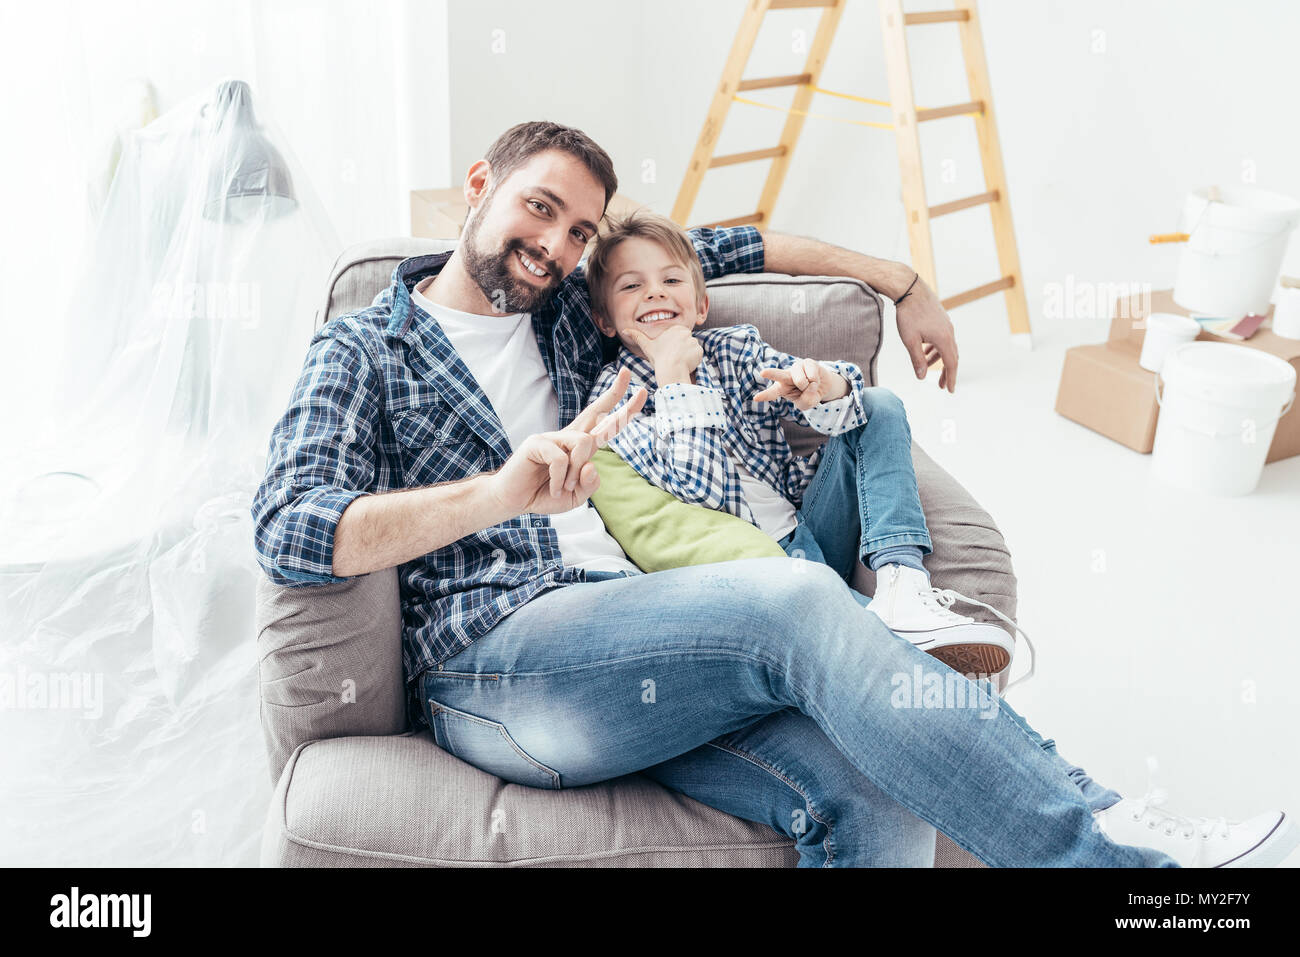 Smiling father and son relaxing on the armchair during home renovation, ladder, boxes and paint buckets on the background - Stock Image